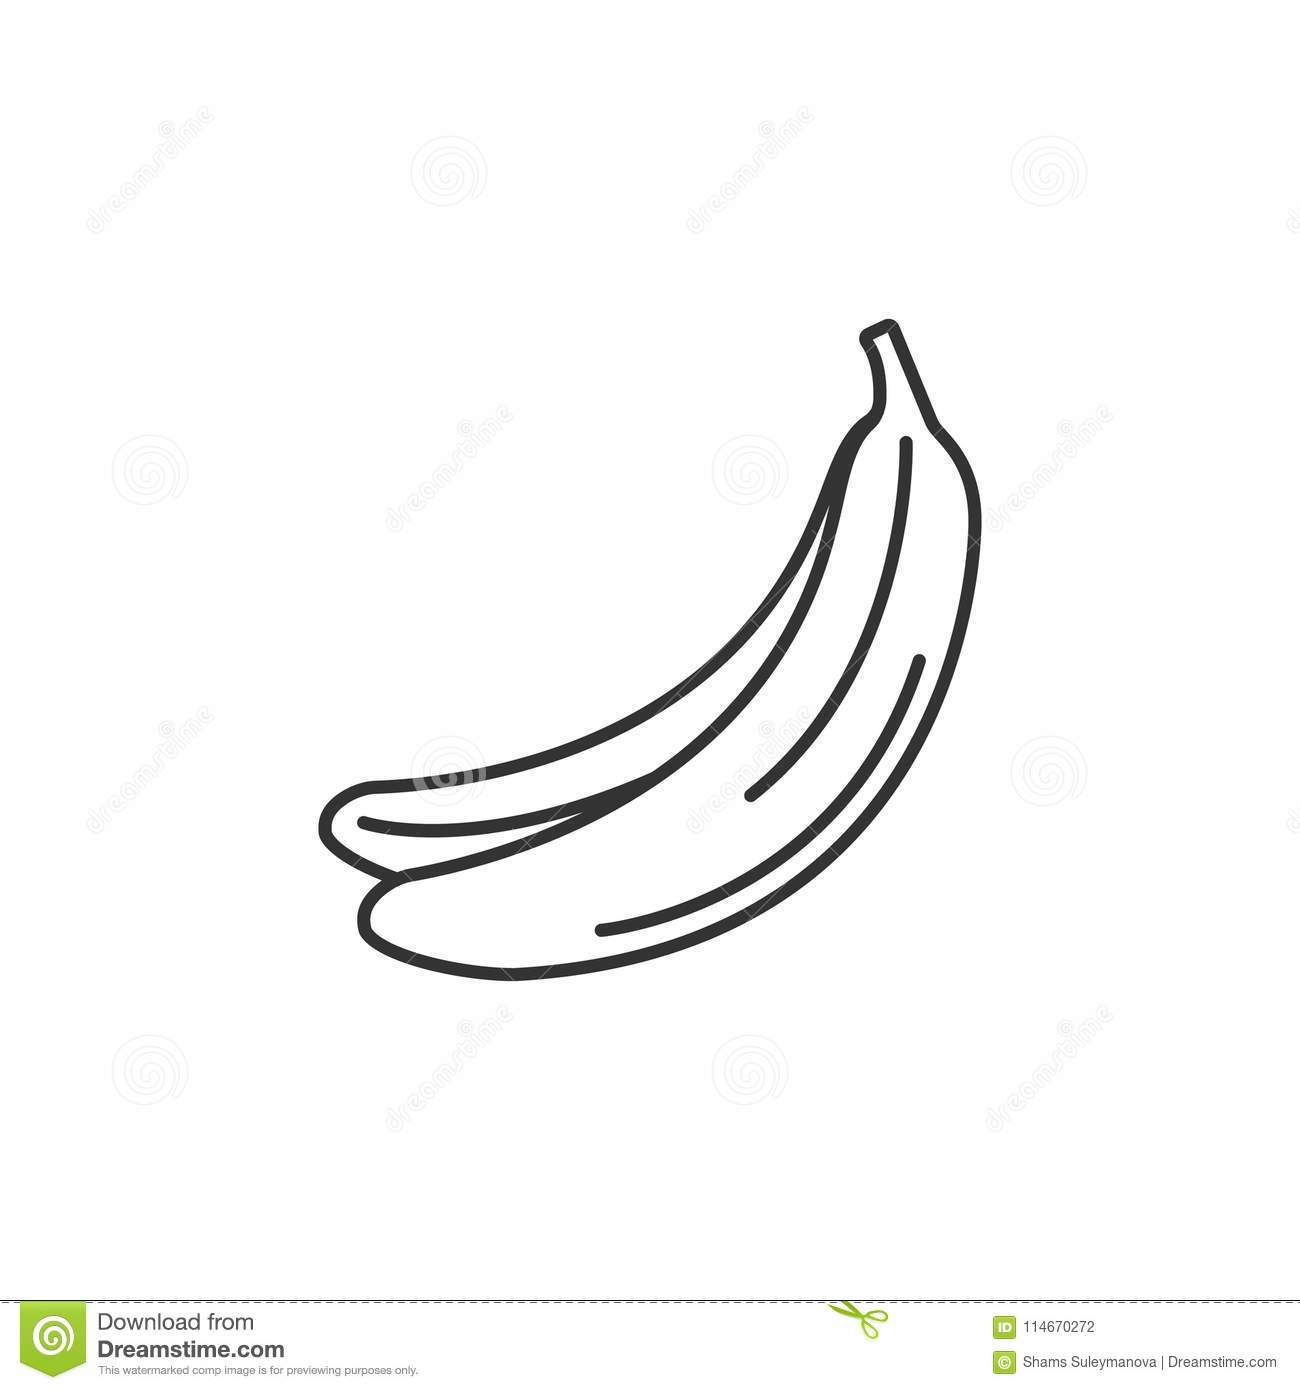 banana icon simple element illustration banana symbol design